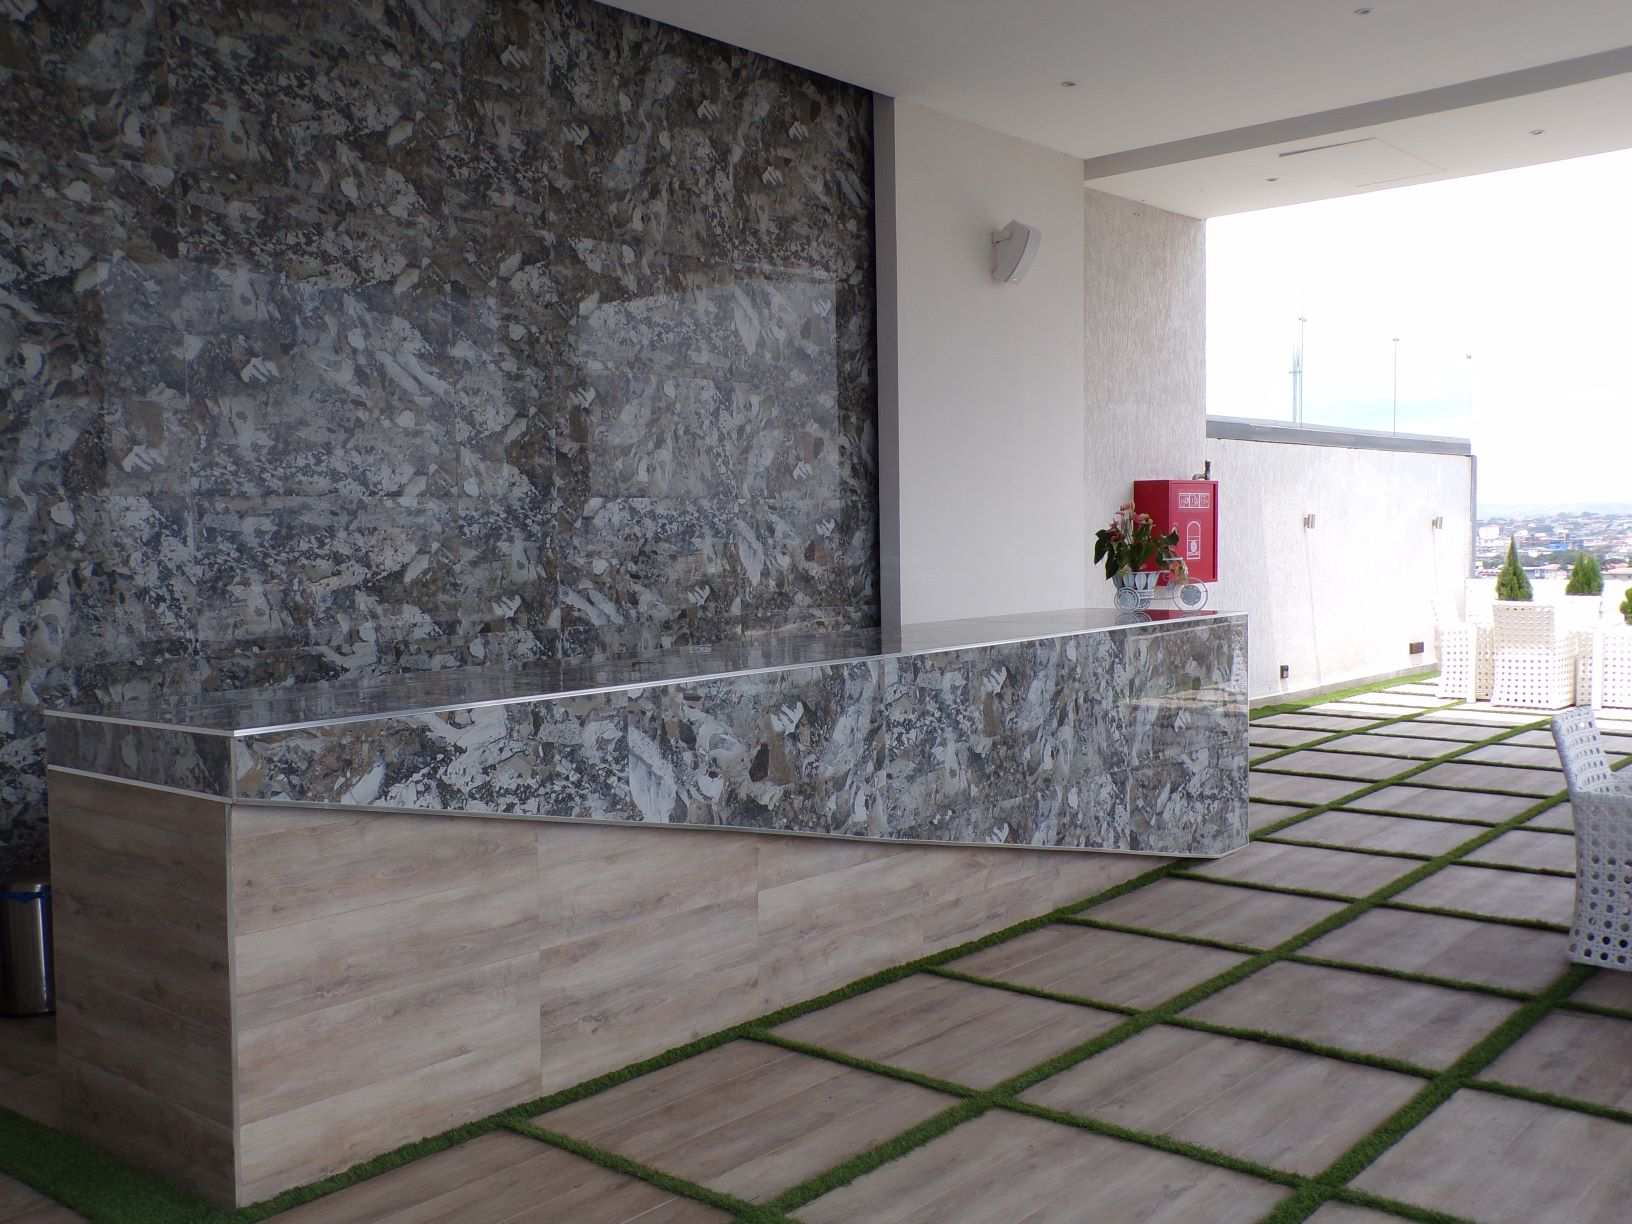 3 BEDROOM LUXURY UNFURNISHED APARTMENT FOR RENT AT NORTH RIGDE